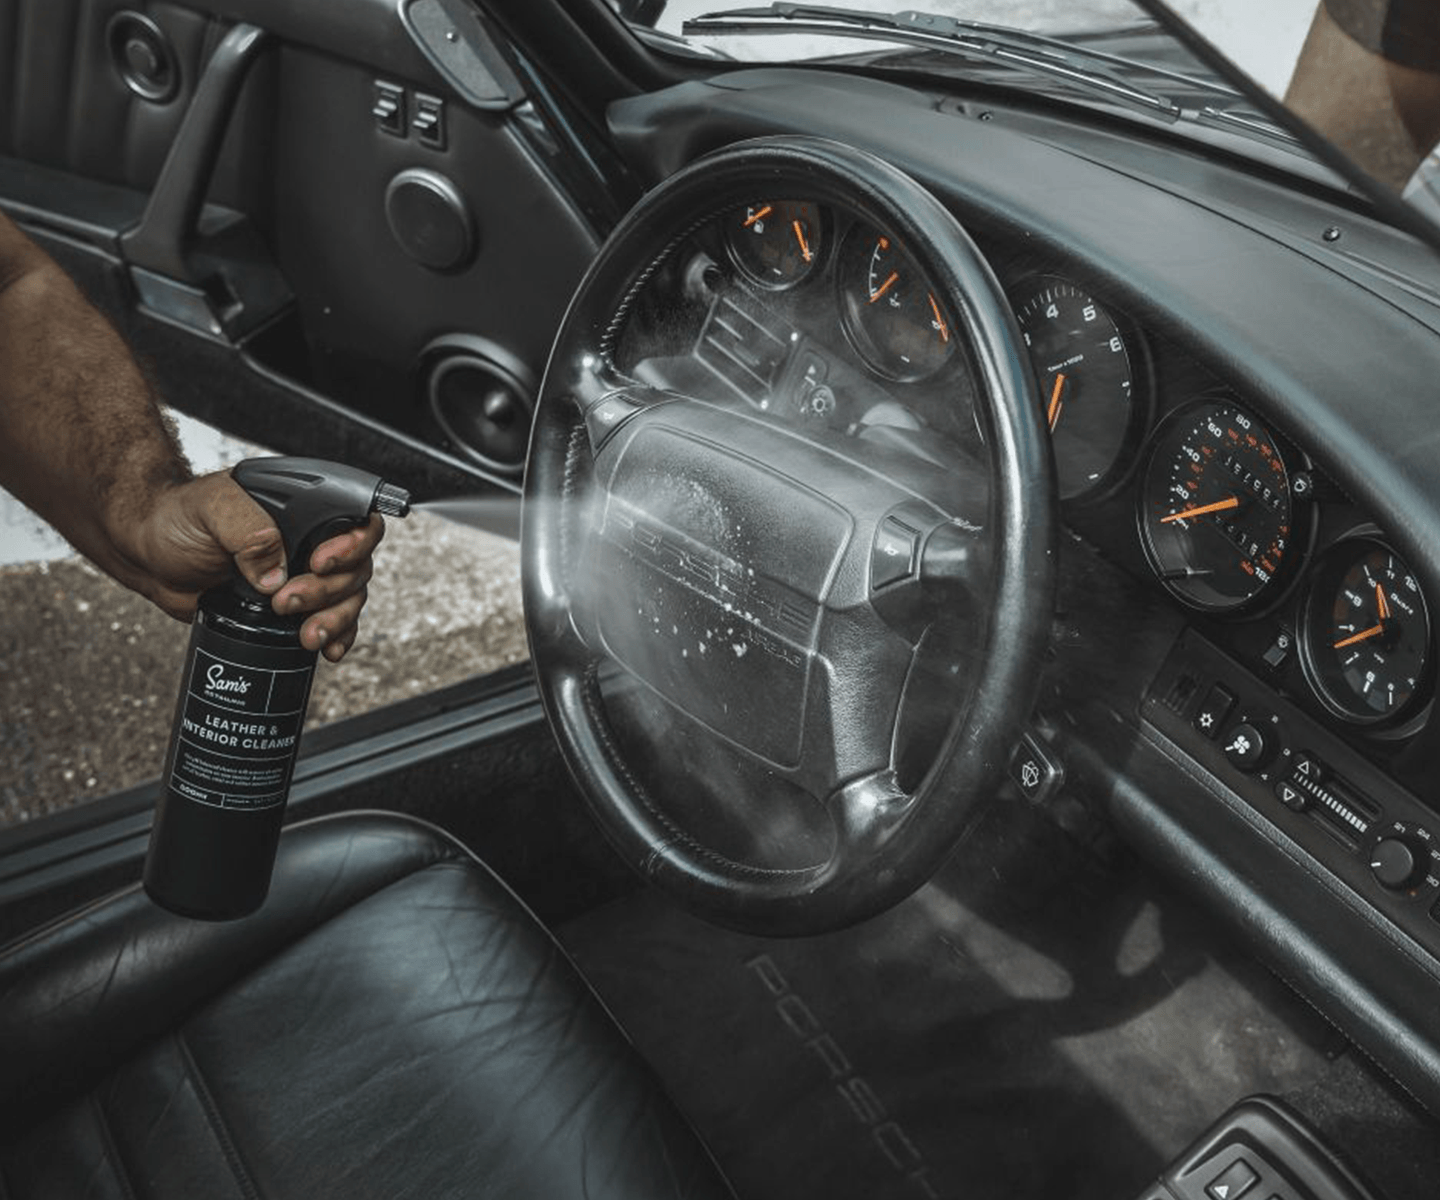 LEATHER & INTERIOR CLEANER